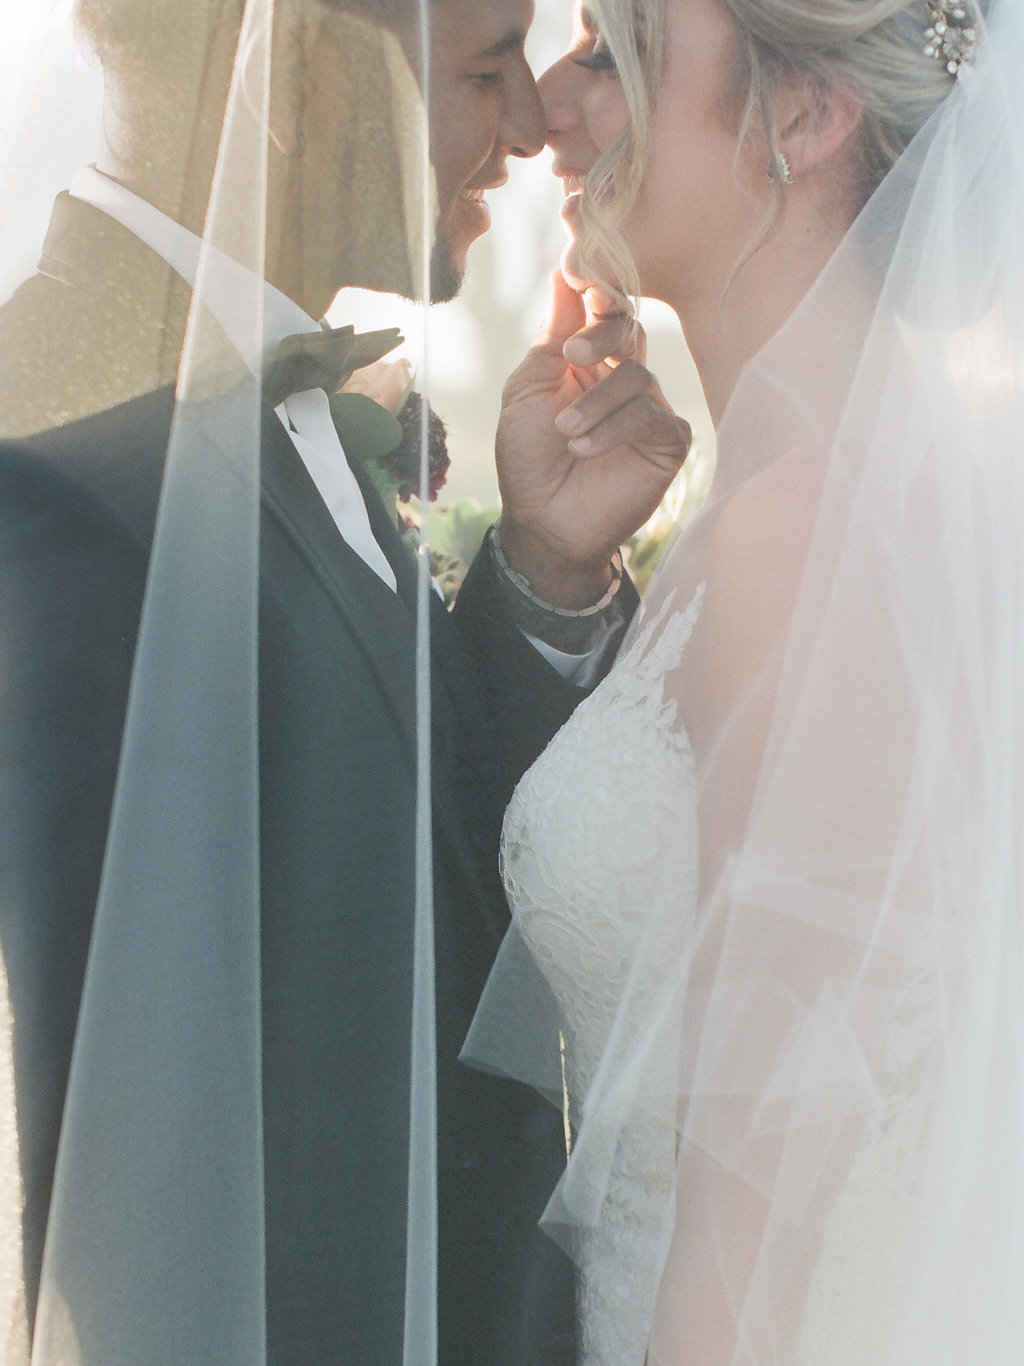 Creative Outdoor Wedding Portrait Under Veil, Bride in Spaghetti Strap Illusion Lowback Lace Dress with Buttons, Curled Hair Updo with Floral Headpiece, Groom in Black Tuxedo, Black Bowtie, White and Red Flower Boutonniere   Tampa Wedding Hair and Makeup Artist LDM Beauty Group